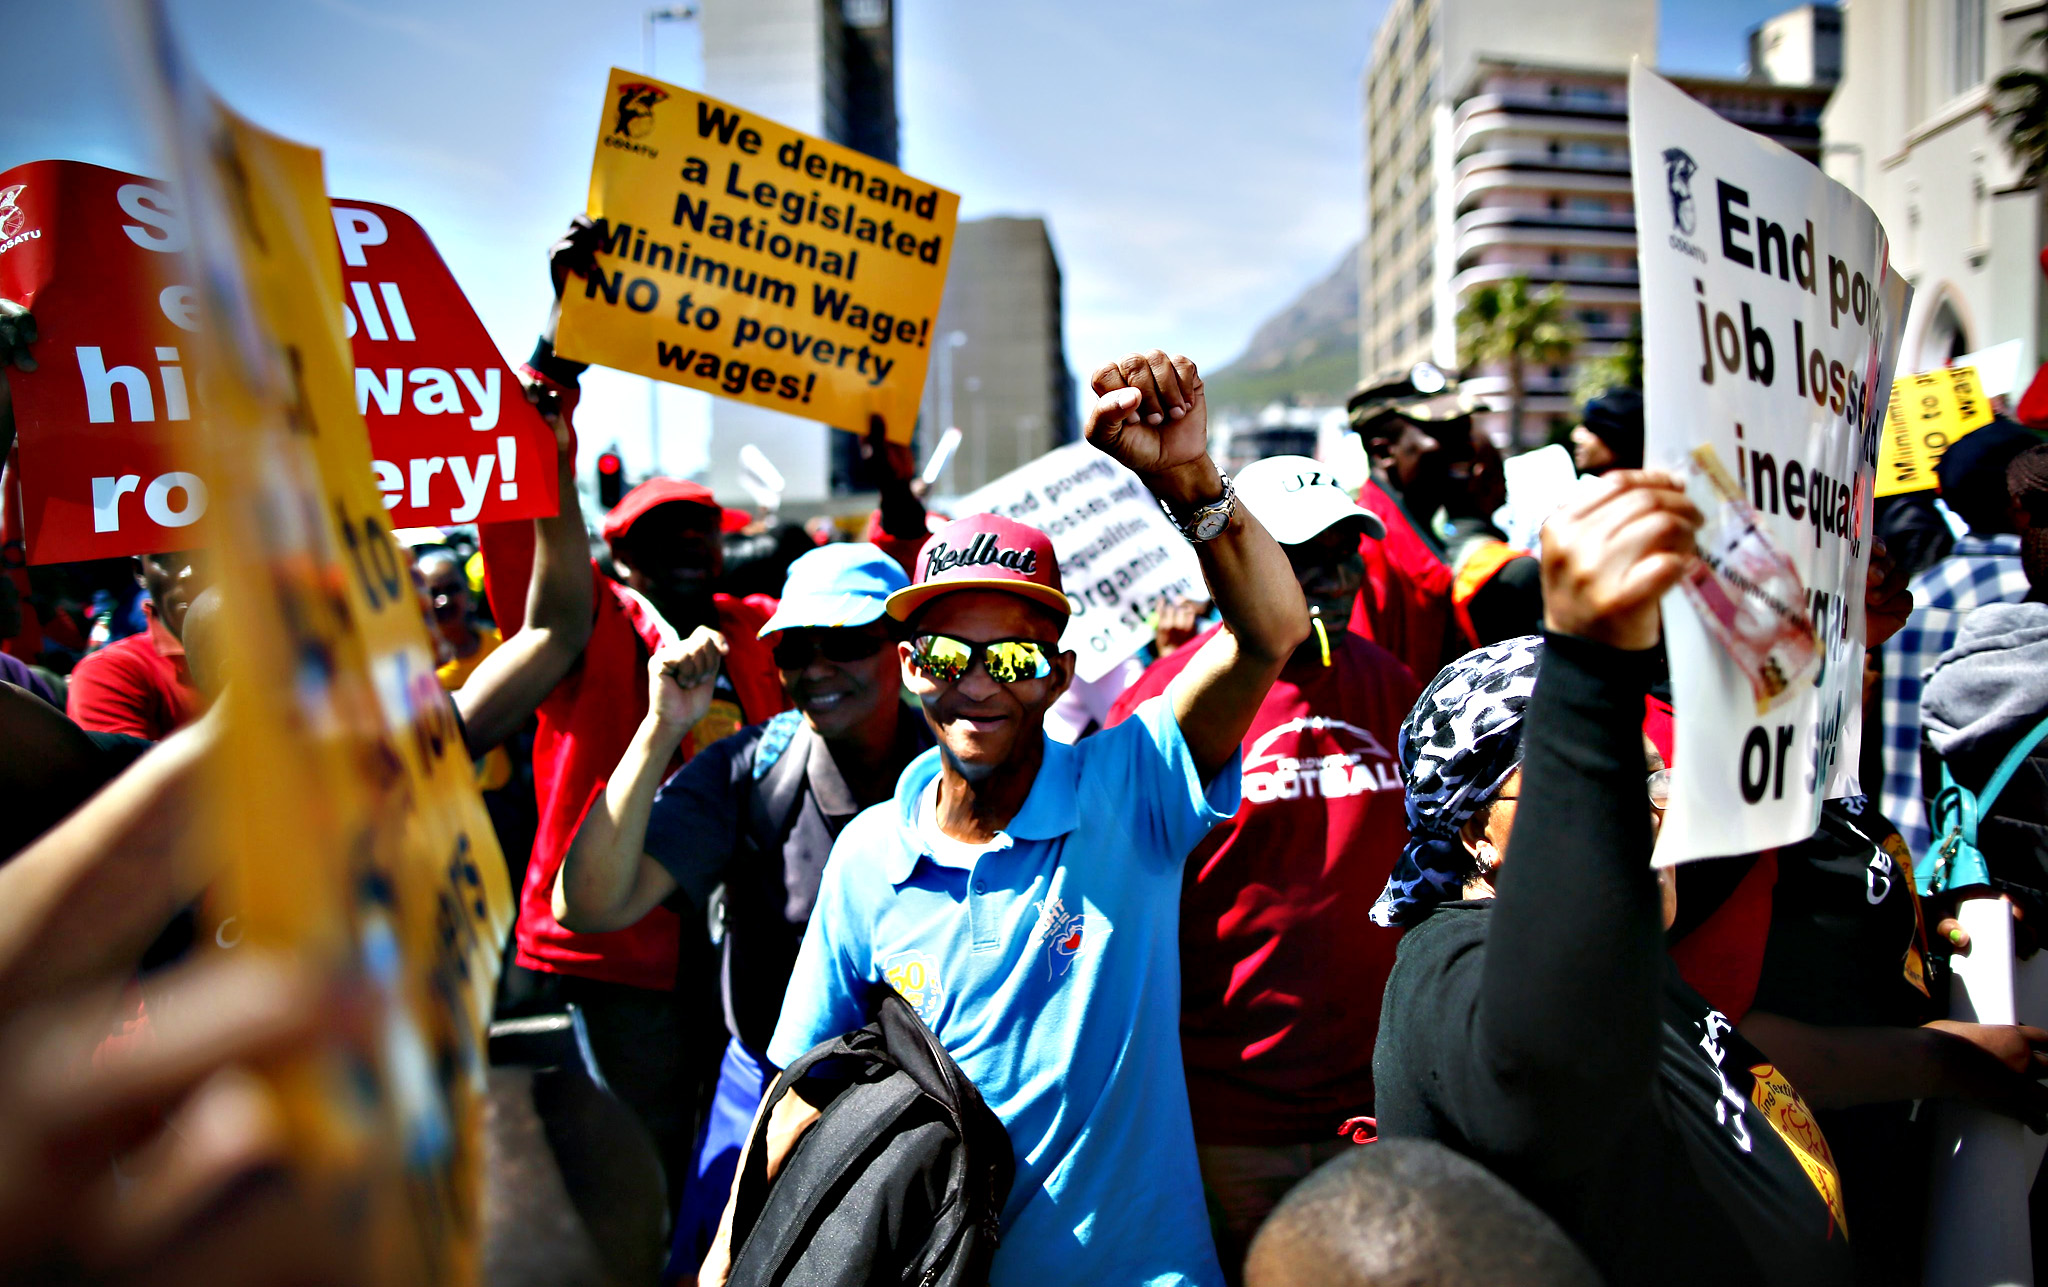 COSATU march to parliament...epa04967149 Protesters chant slogans and sing during a Congress of South African Trade Unions (COSATU) protest outside parliament in Cape Town, South Africa, 07 October 2015. Members of COSATU nationwide have embarked on a national strike. COSATU Provincial secretary Tony Ehrenreich said the march aimed to put pressure on the government to halt retrenchments, immediate implementation of an efficient and reliable public transport system and for aboloshing e-tolls